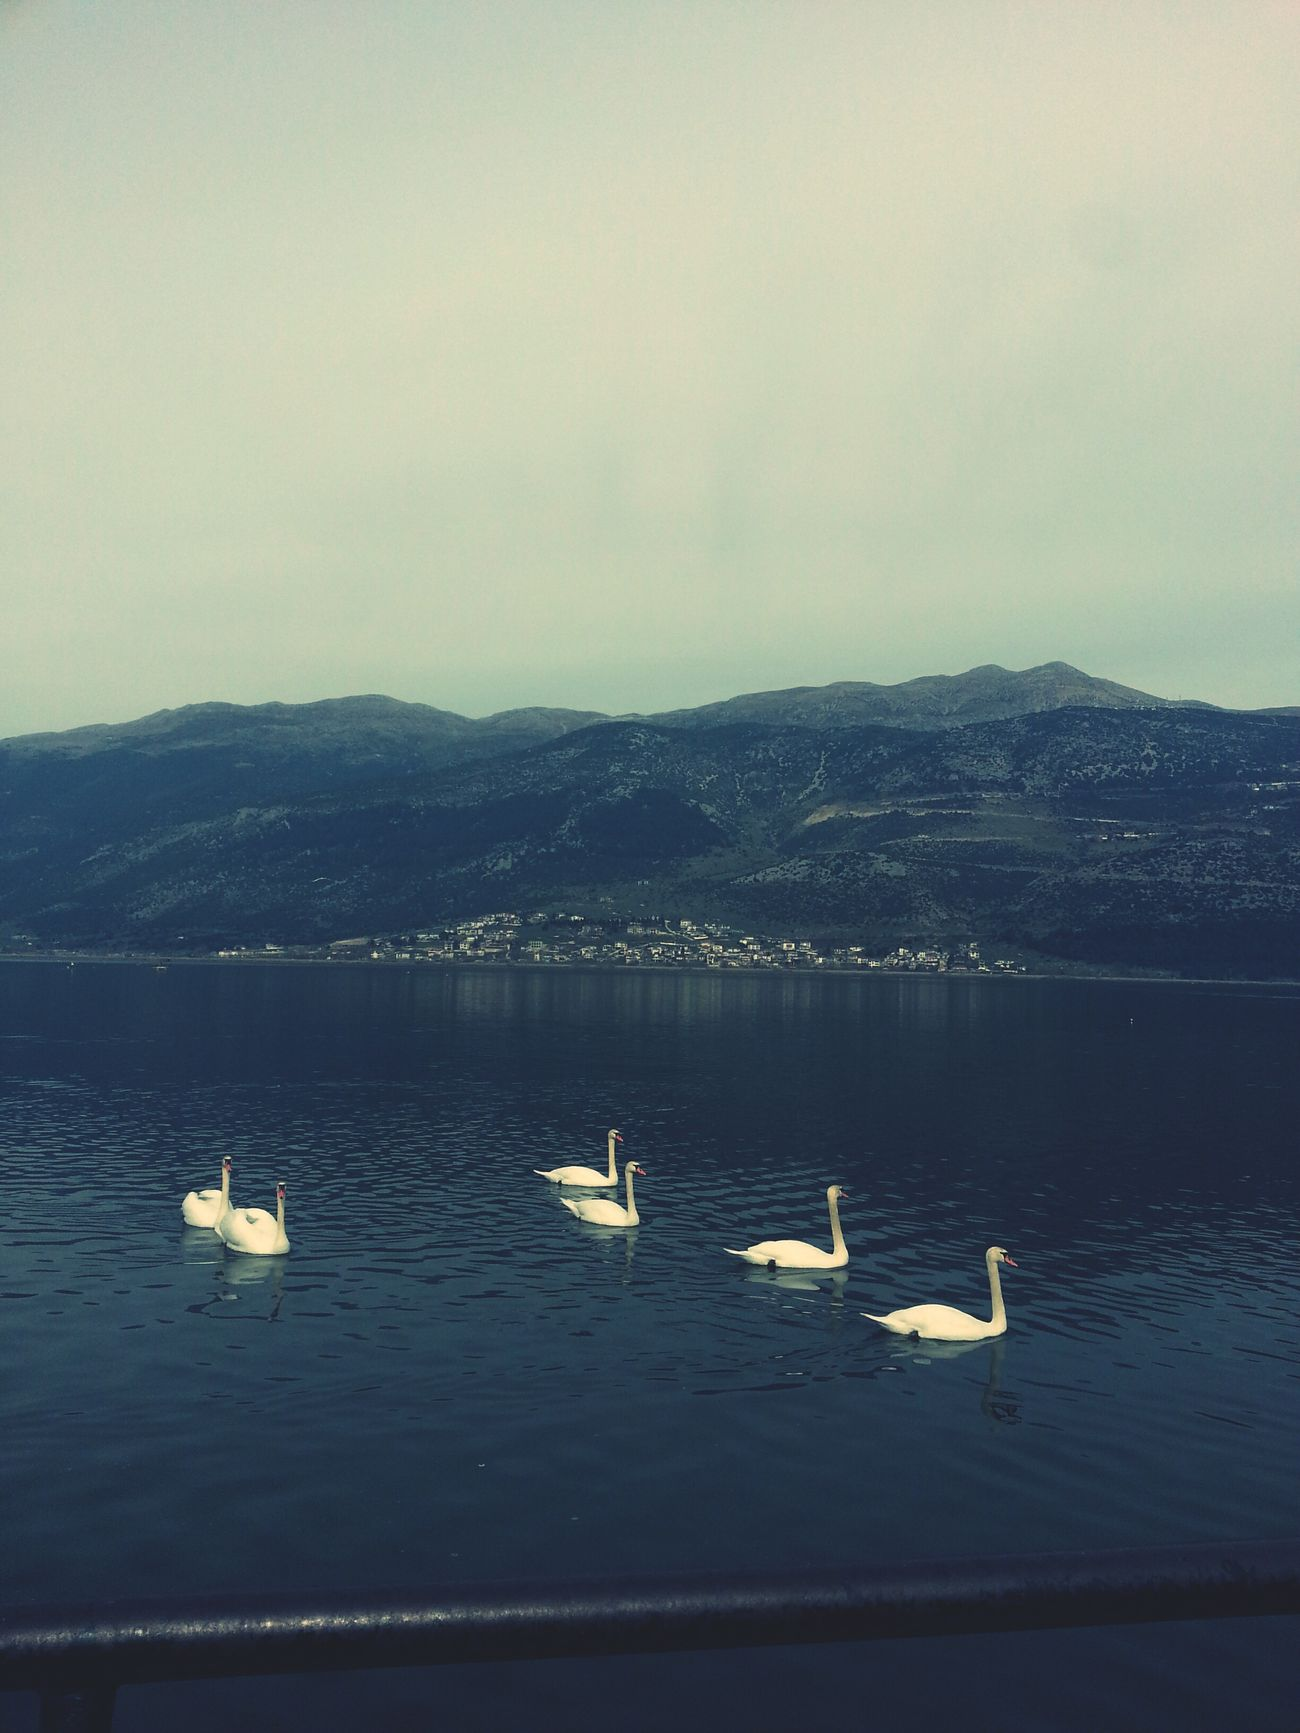 Photooftheday VSCO Vscocam Igers Igersgreece Relaxing Time Lakeview Swans Peaceful Evening Evening Sky Naturebeauty Nature_collection Landscape_collection EyeEmNatureLover Ioannina